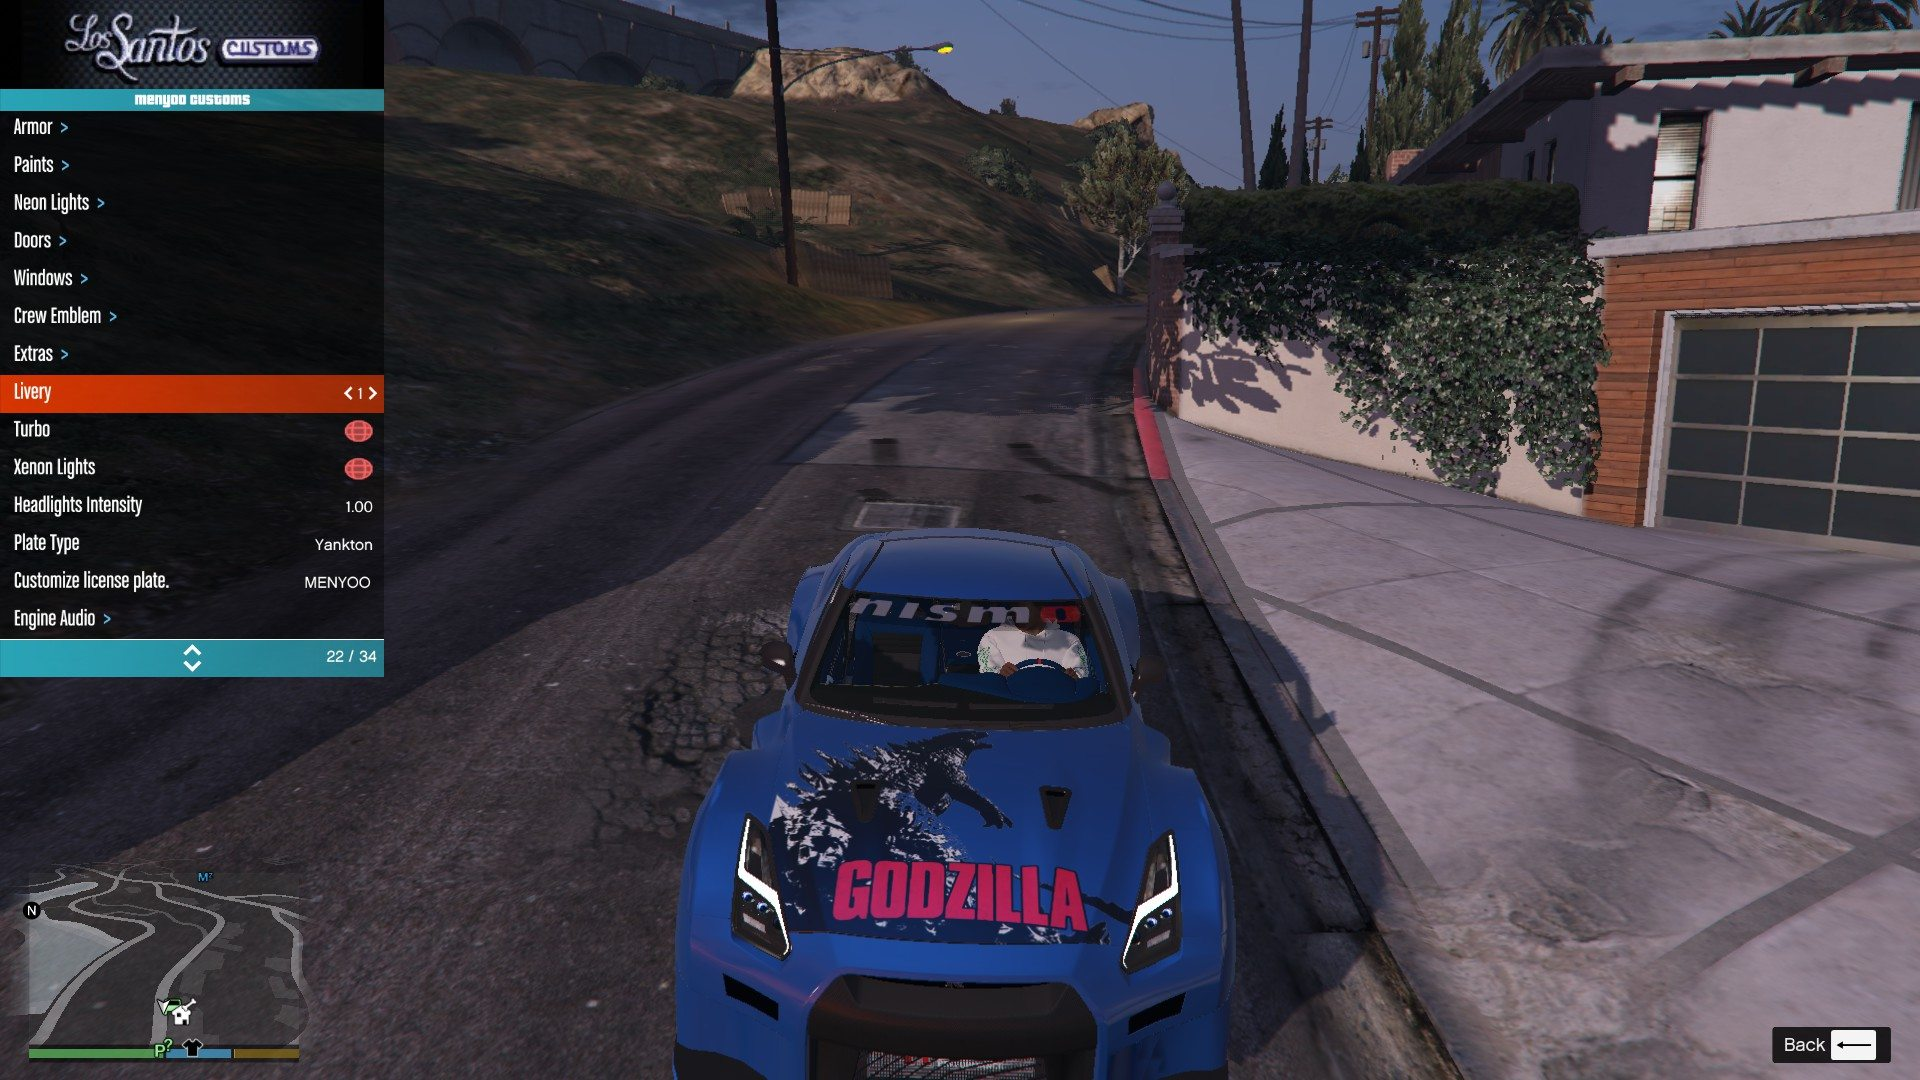 Nissan GTR Widebodykit GTA5 Mods (1)